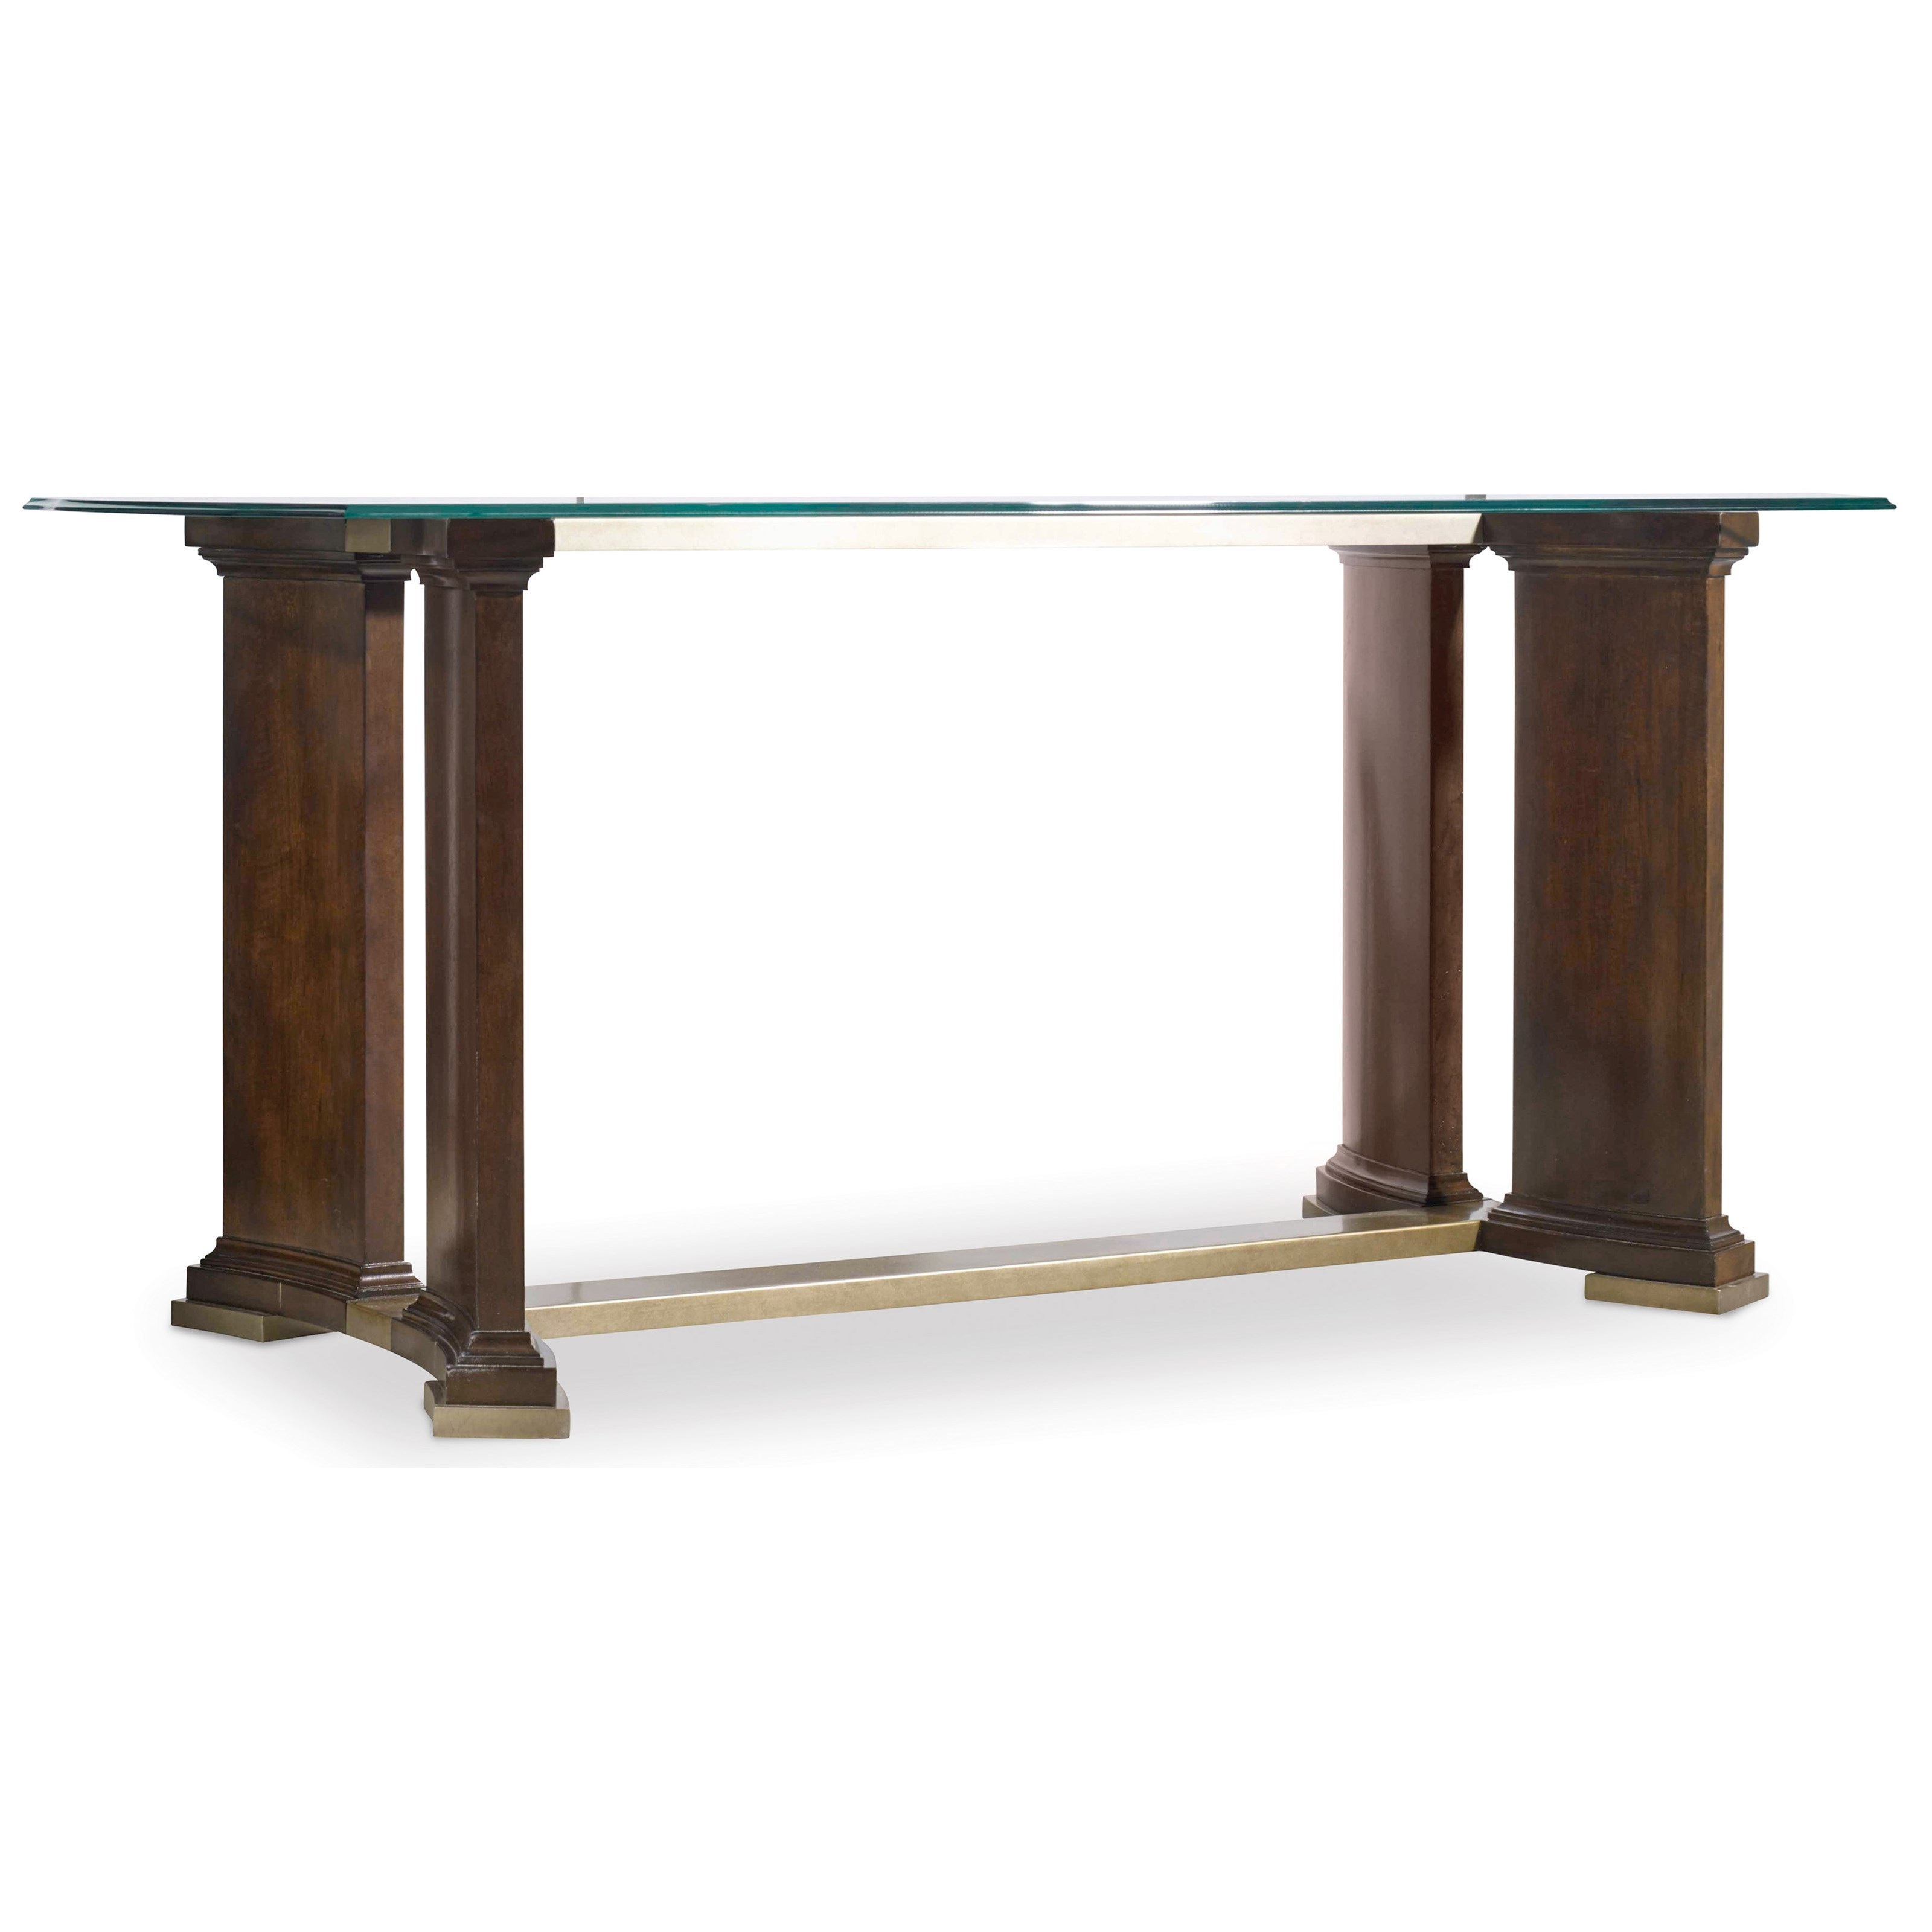 Hooker Furniture Skyline Writing Desk - Item Number: 5336-10459